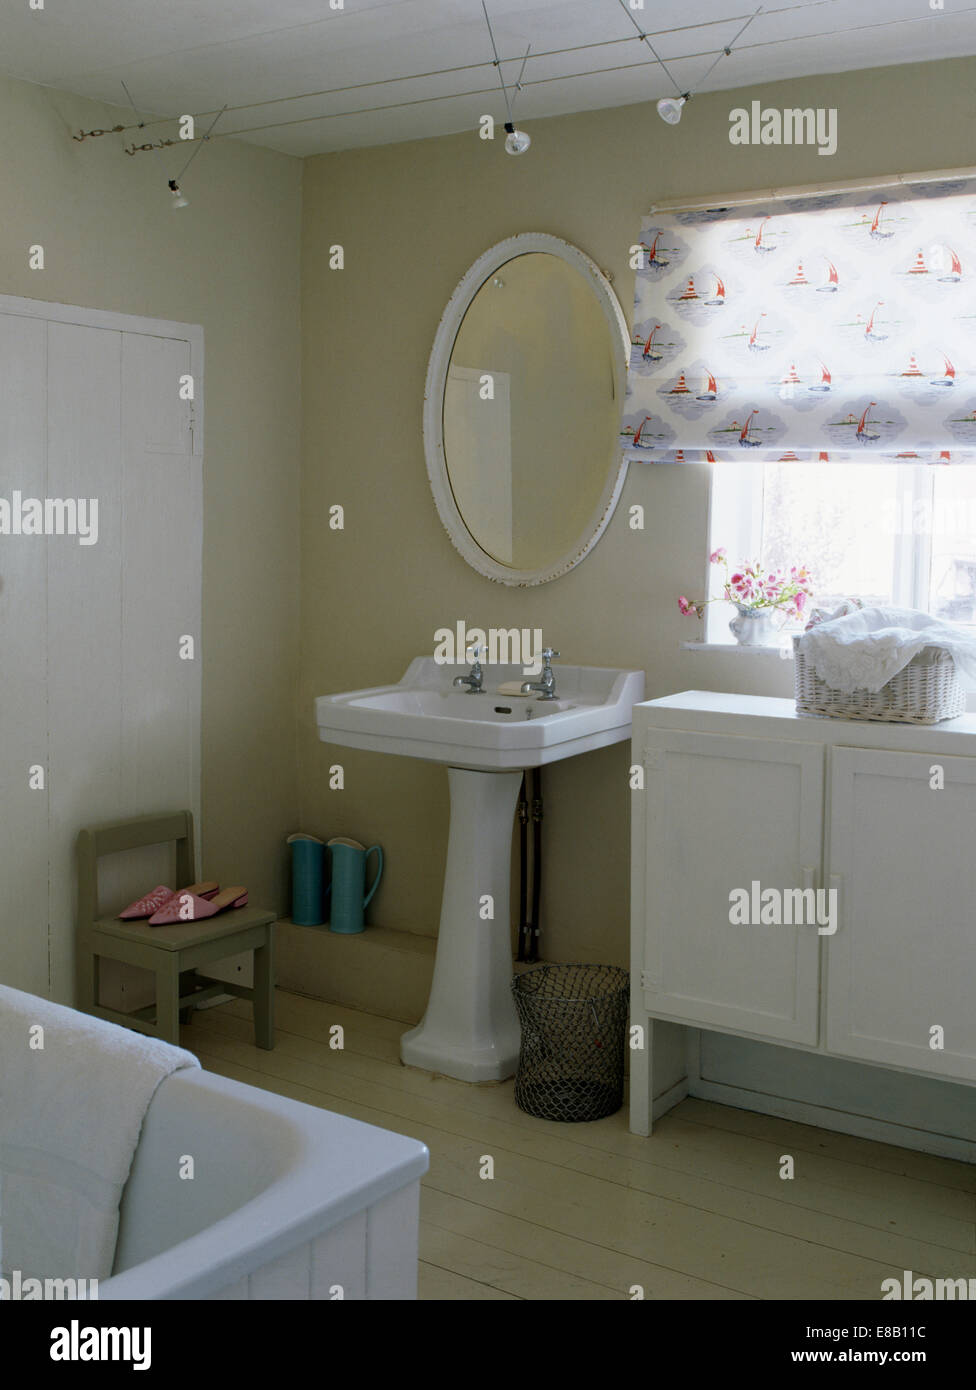 Oval Mirror Above White Pedestal Basin In Country Bathroom With Patterned  White Blind On Window Above Painted Cupboard